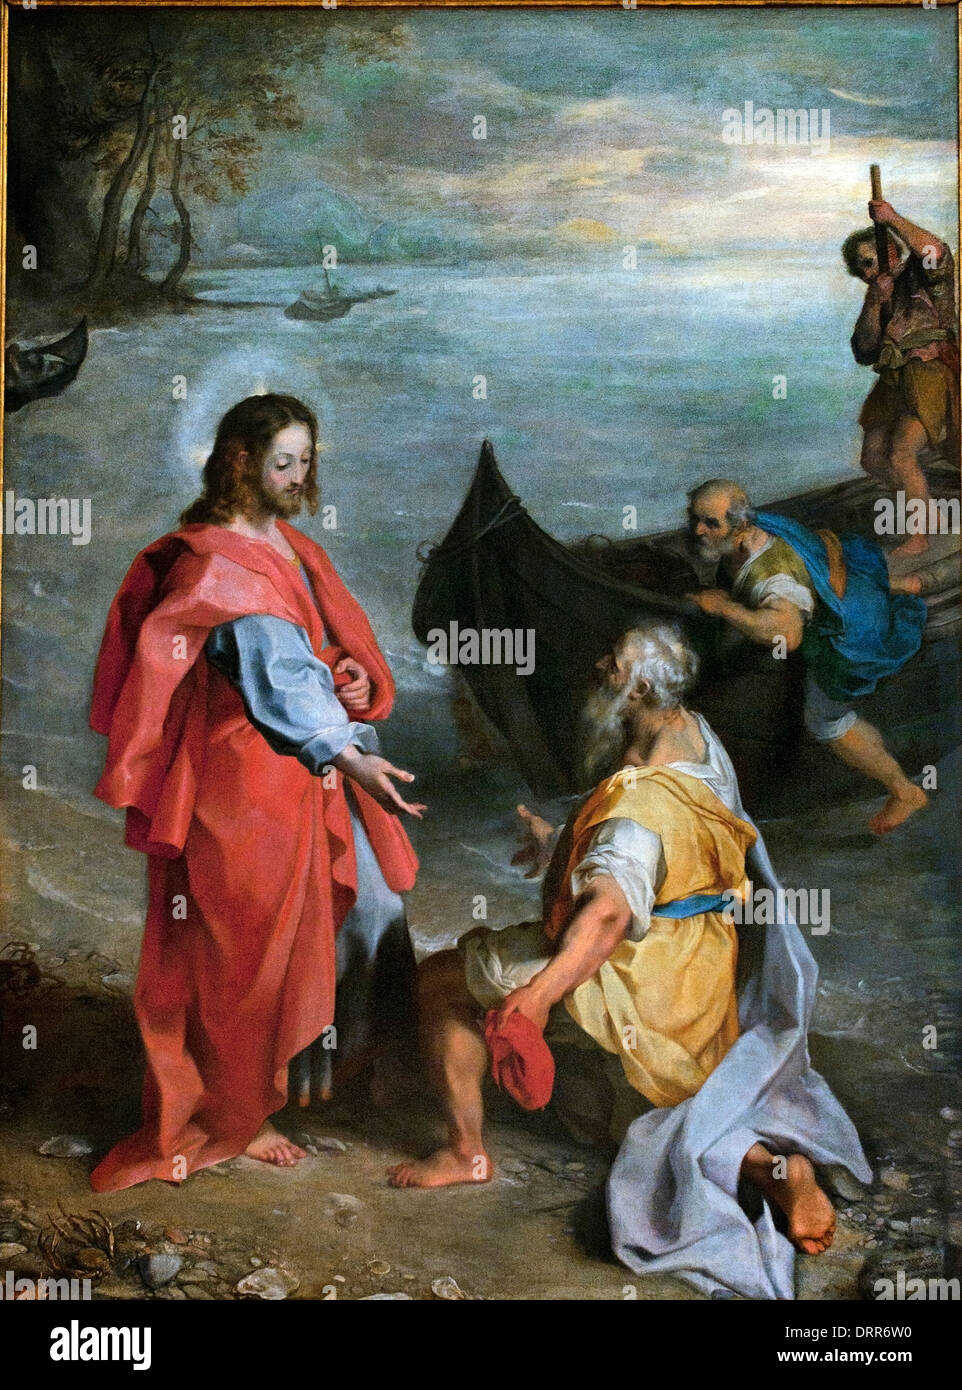 The Calling of St. Peter and St. Andrew (1580-1583) Federico Barocci 1535-1612 Italy Italian - Stock Image